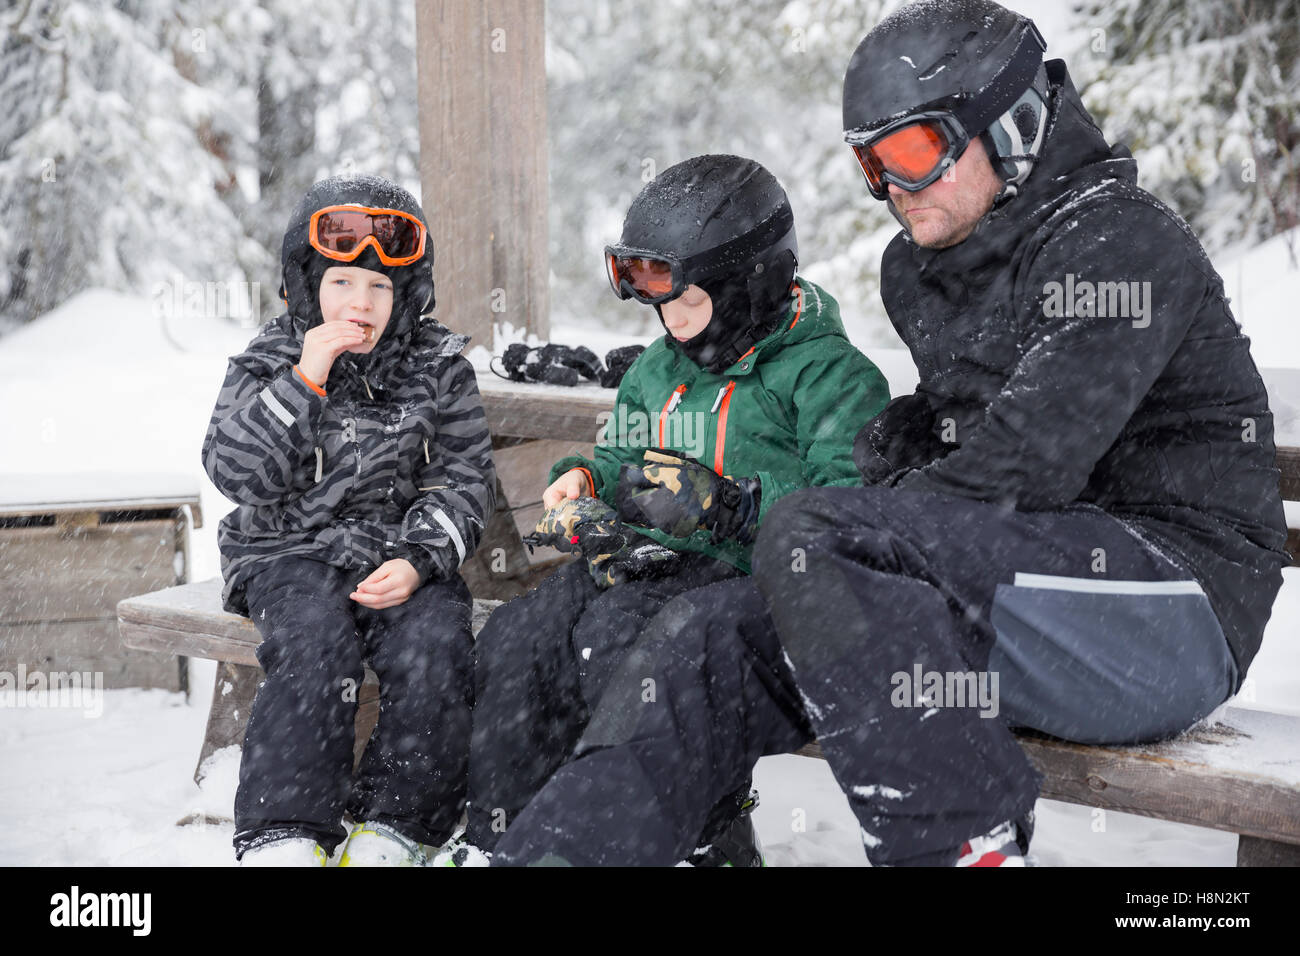 Mature man and boys (6-7, 8-9) wearing helmets and goggles sitting on bench surrounded by winter landscape - Stock Image